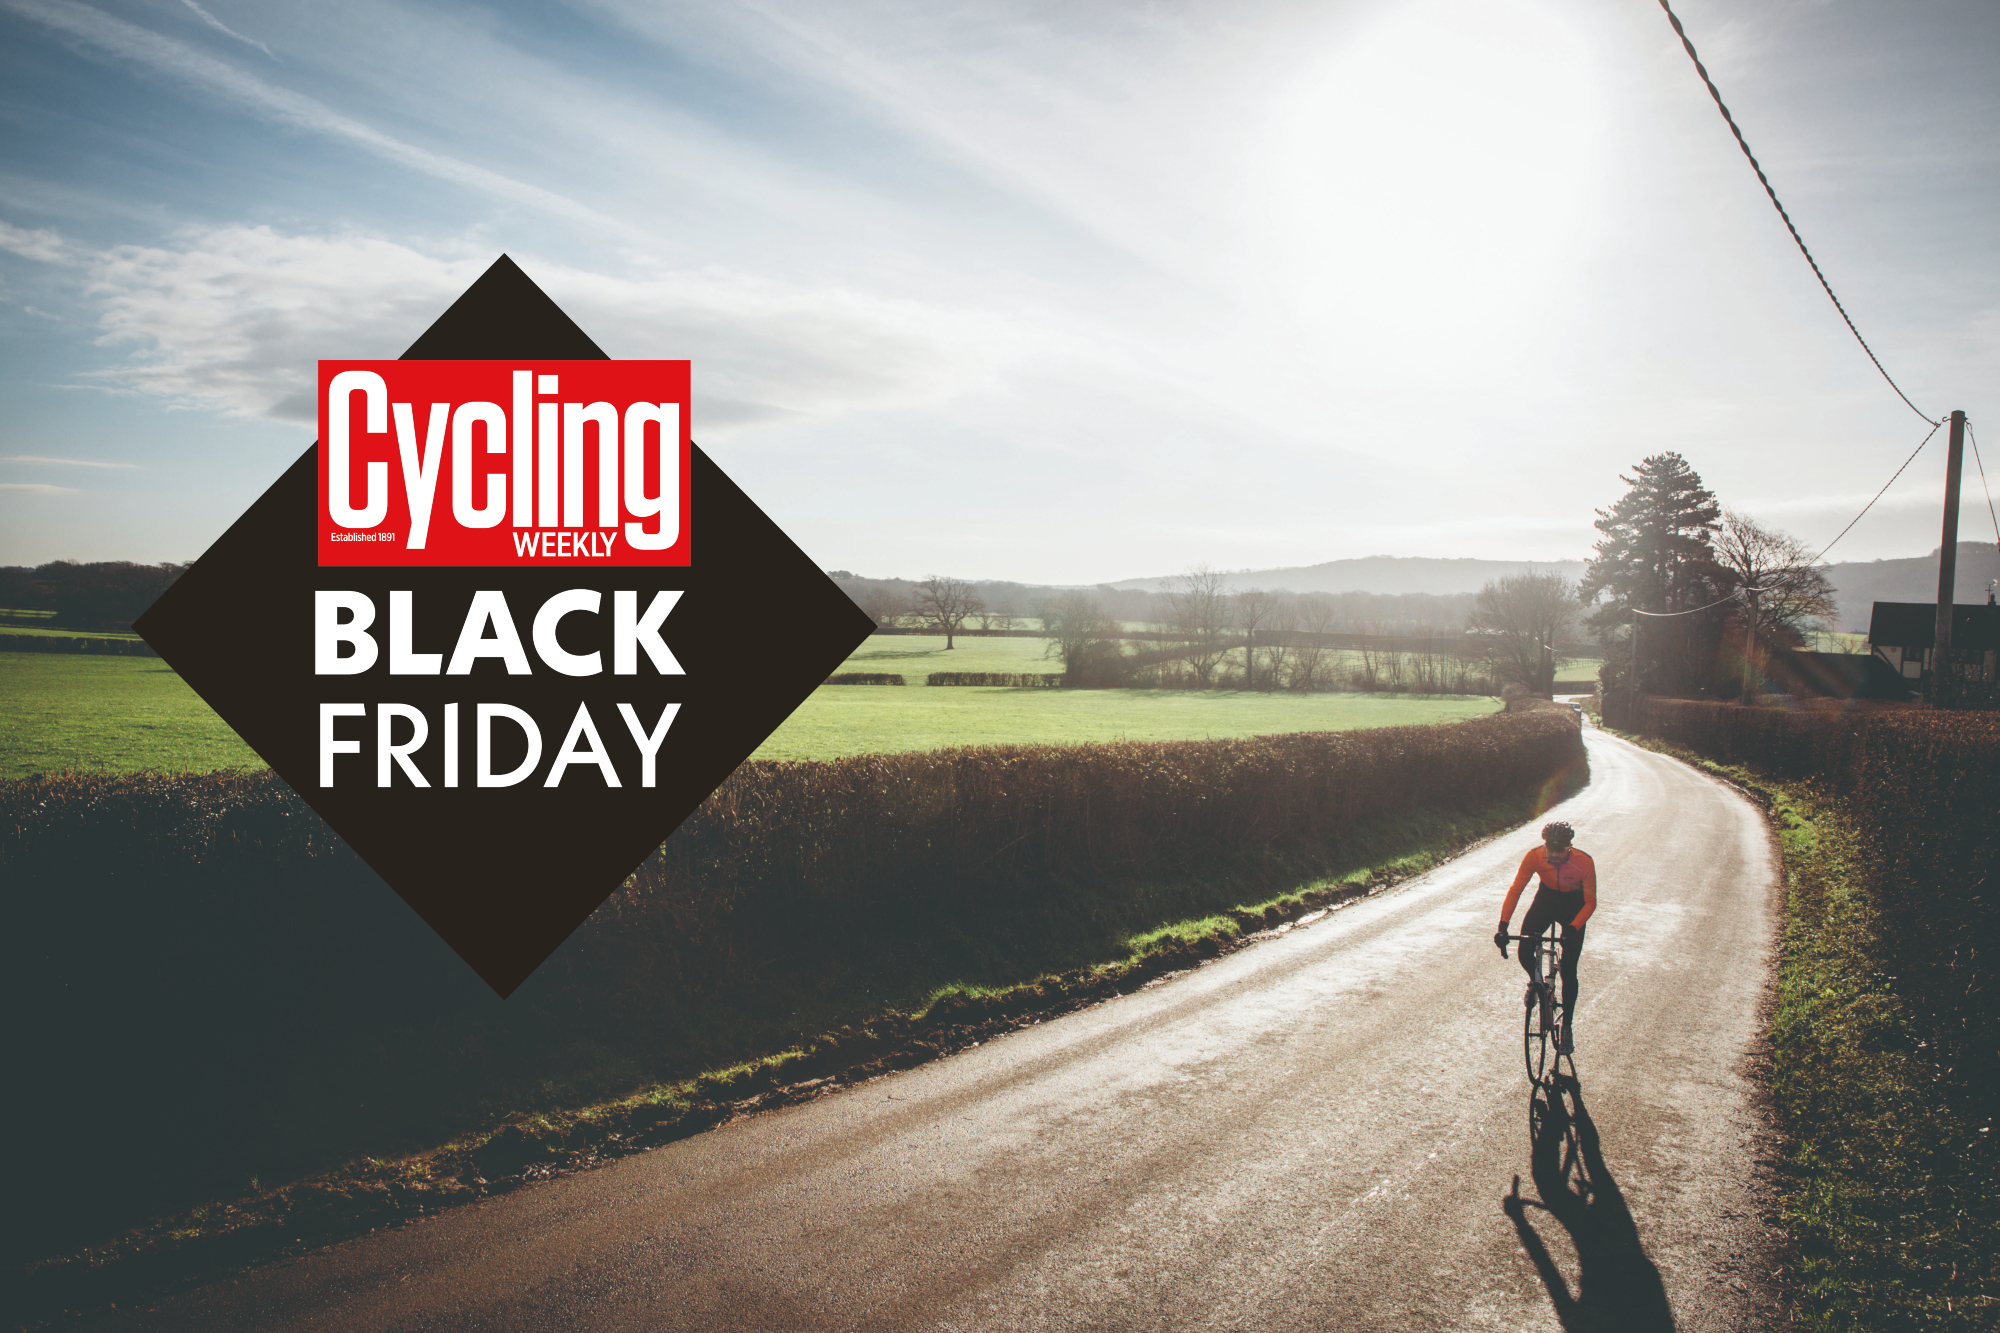 Black Friday 2019 cycling deals: £300 off the Ribble Endurance and Wahoo Elemnt Bolt savings